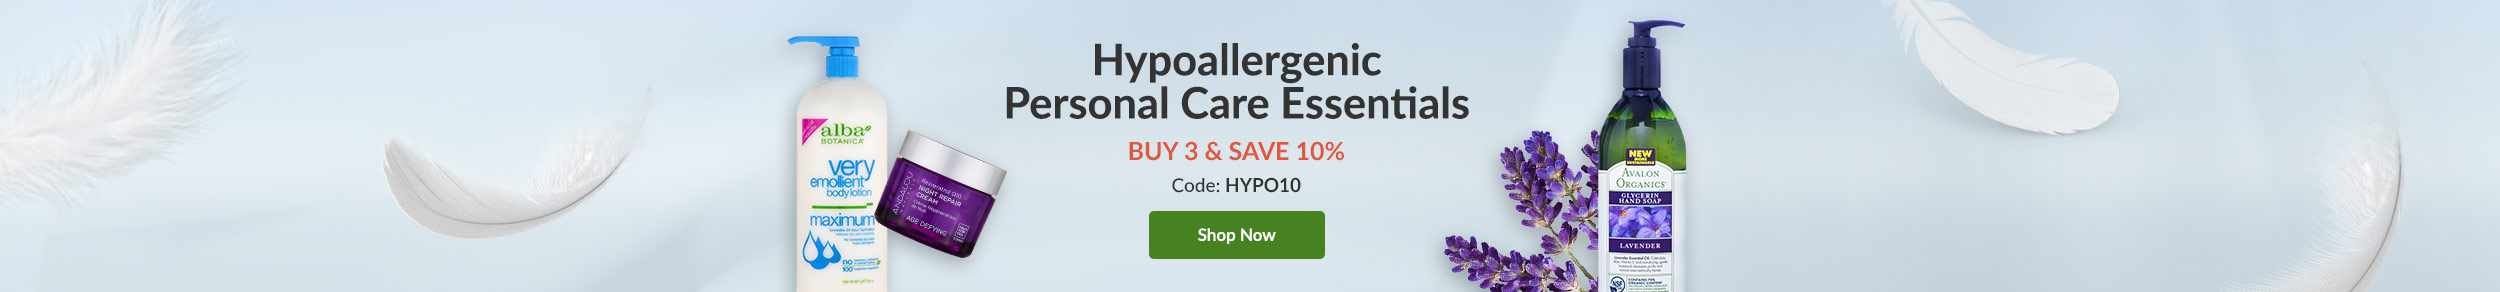 https://i3.pureformulas.net/images/static/Hypoallergenic-Personal-Care-Essentials_slide3_061918.jpg